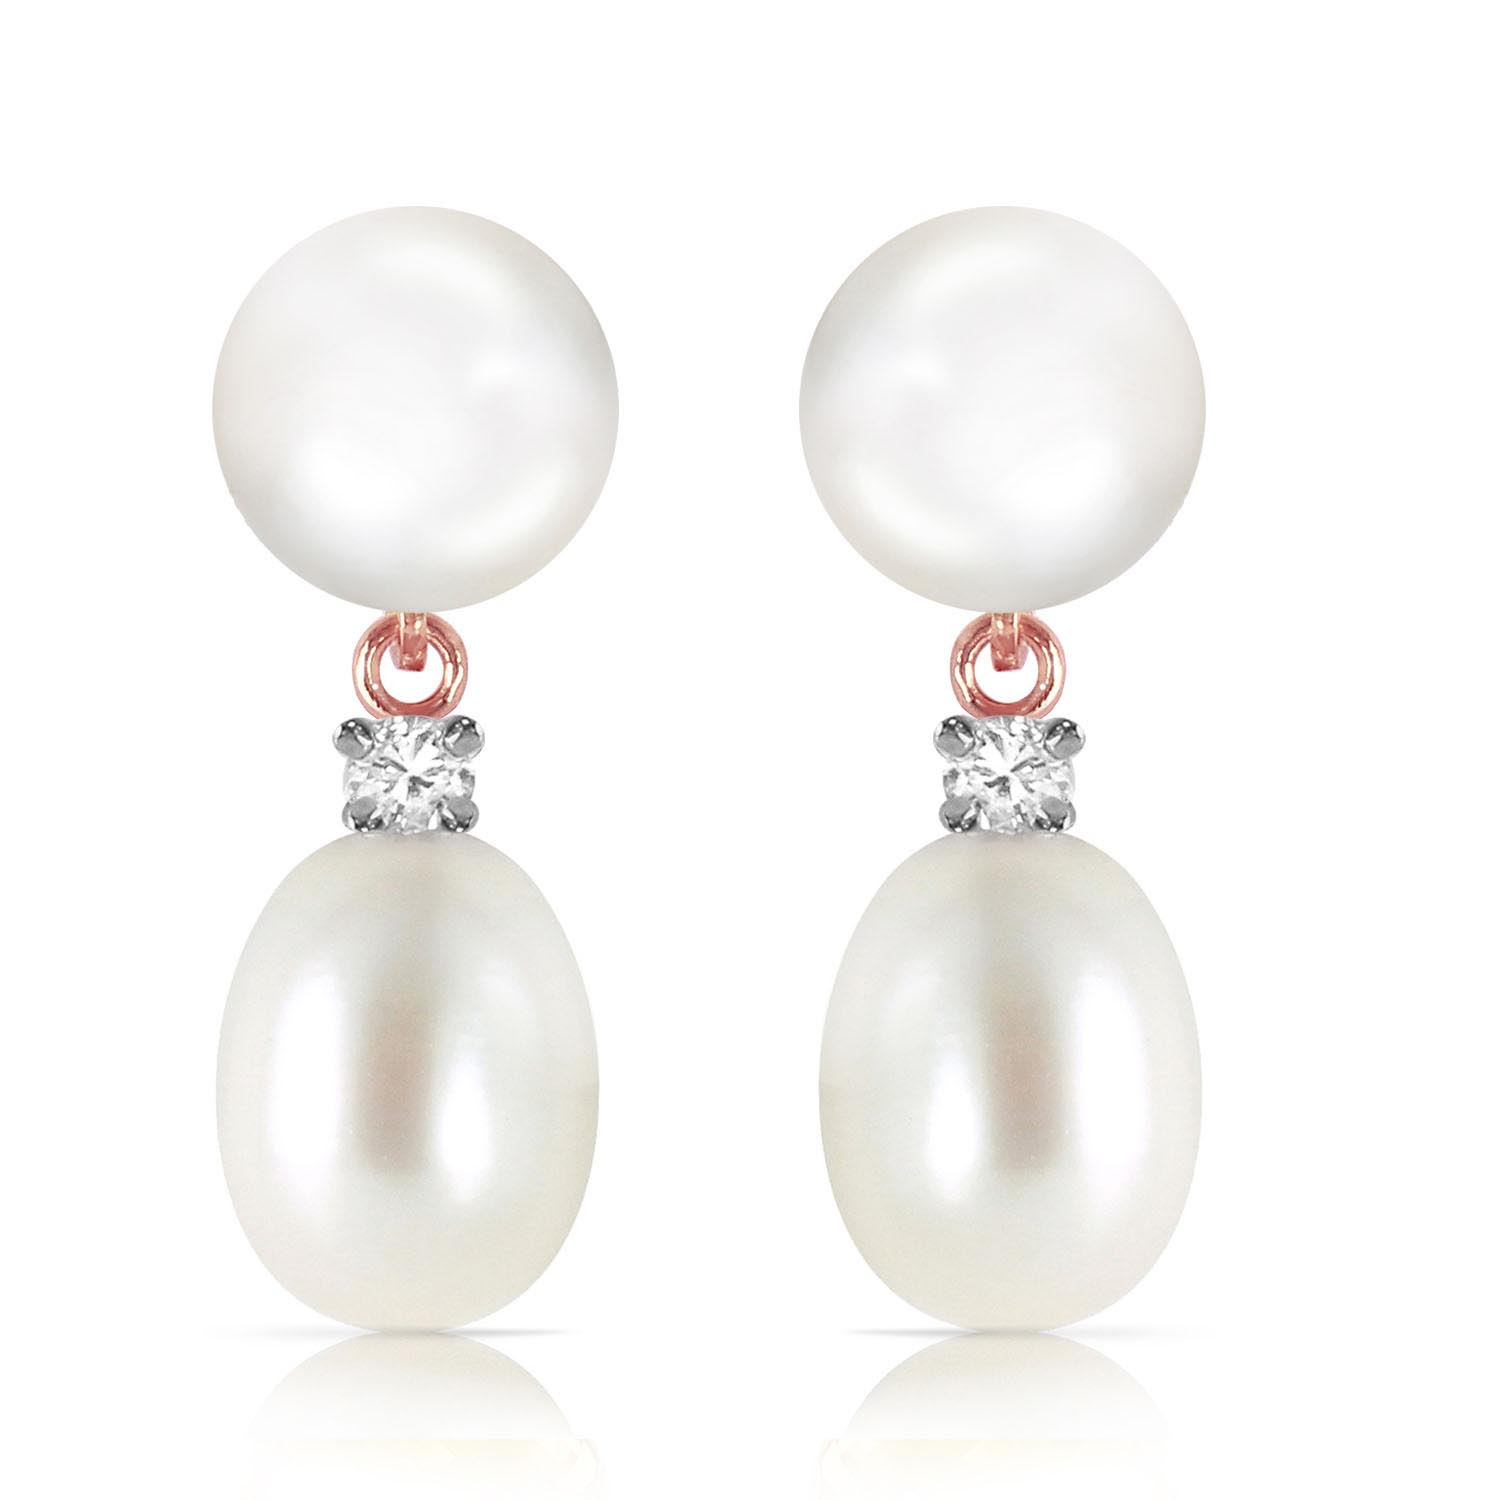 Pearl and Diamond Stud Earrings 10.0ctw in 14K Rose Gold